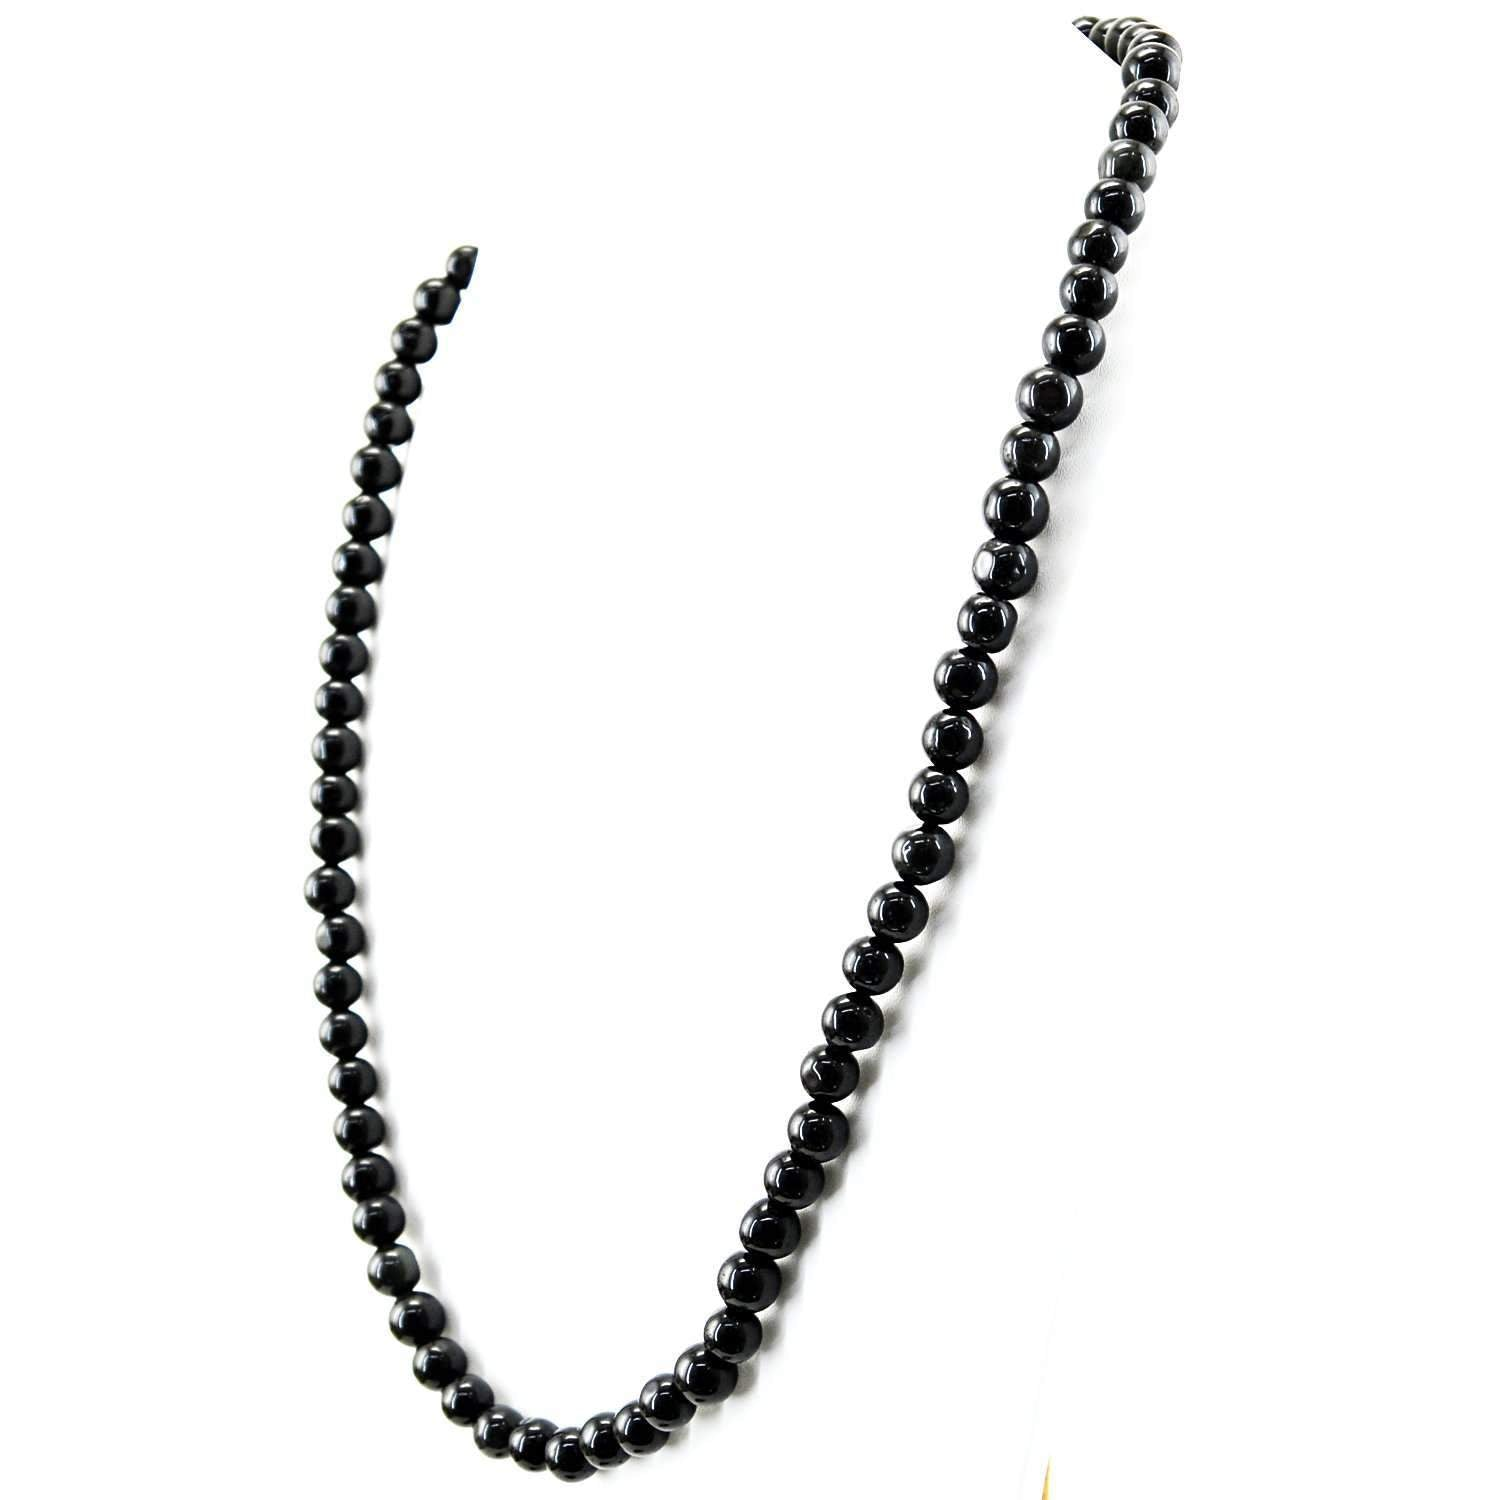 gemsmore:Untreated Black Spinel Necklace Natural Round Shape Beads